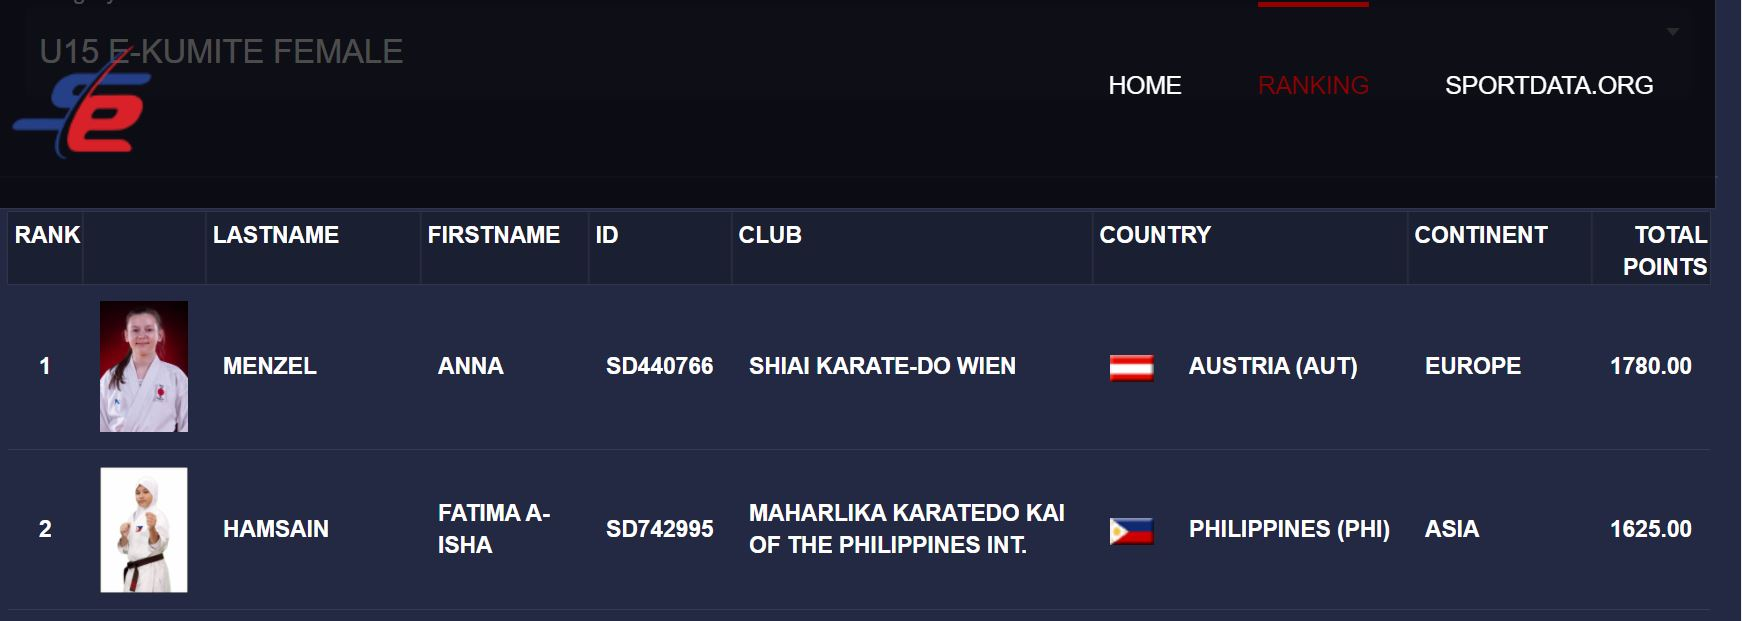 The Philippines' Fatima Hamsain is ranked No. 2 just 155 points behind Anna Menzel of Austria.